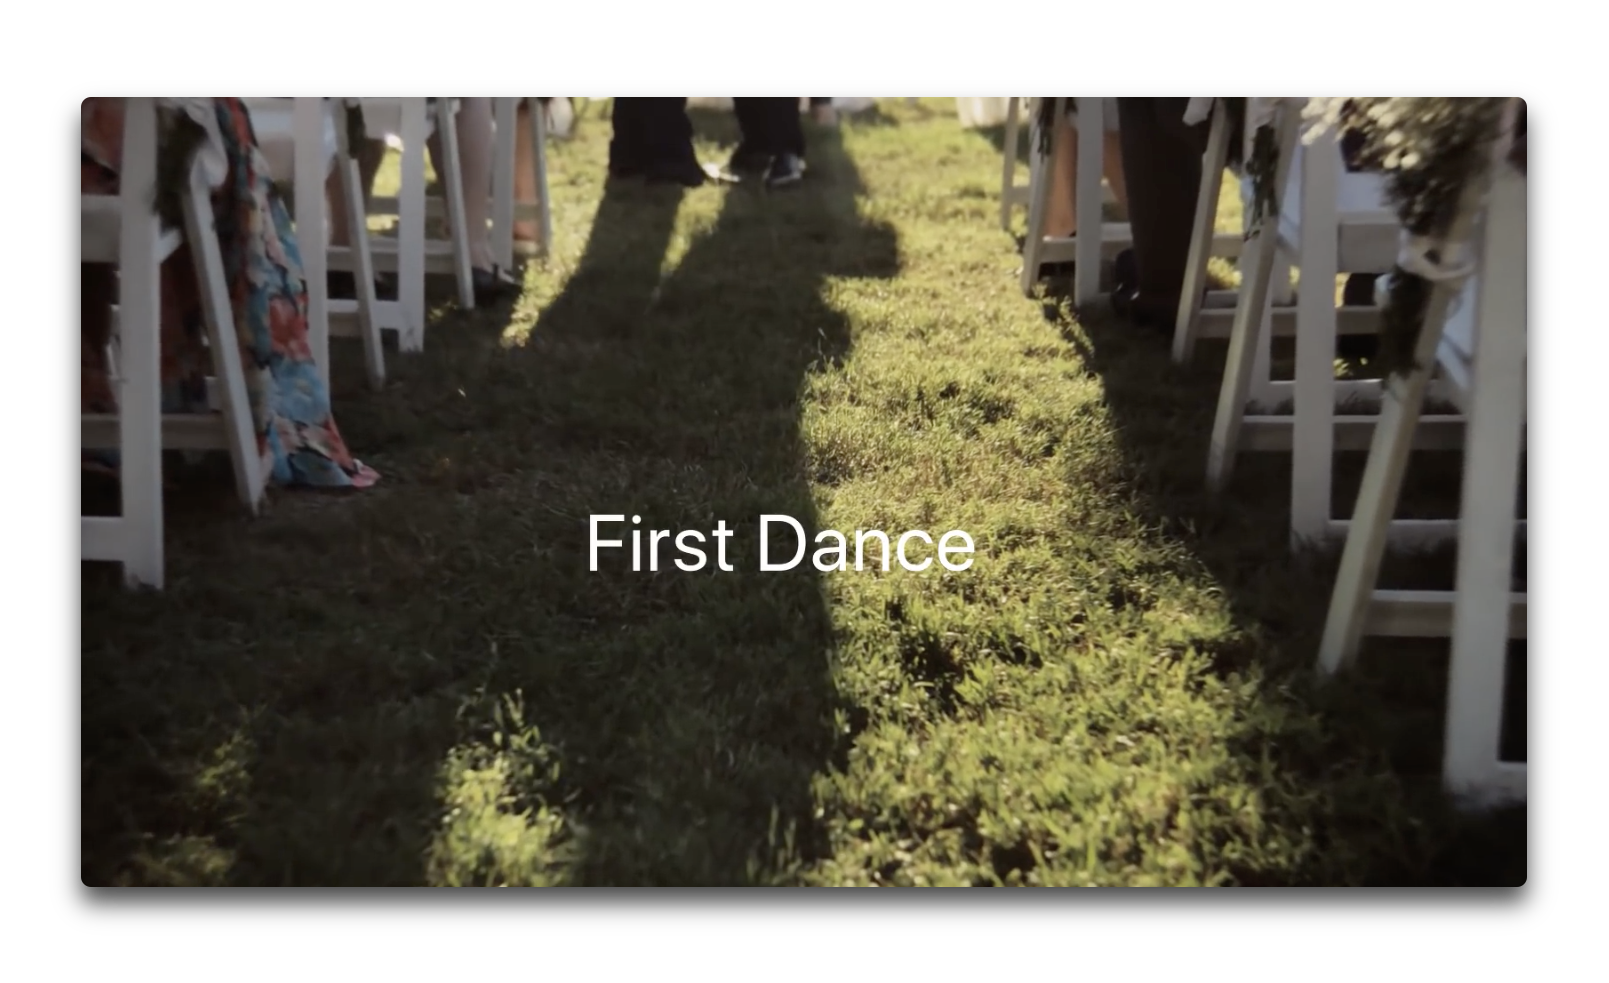 Apple、Apple Australiaで「First Dance」と題する新しいCF4本を公開